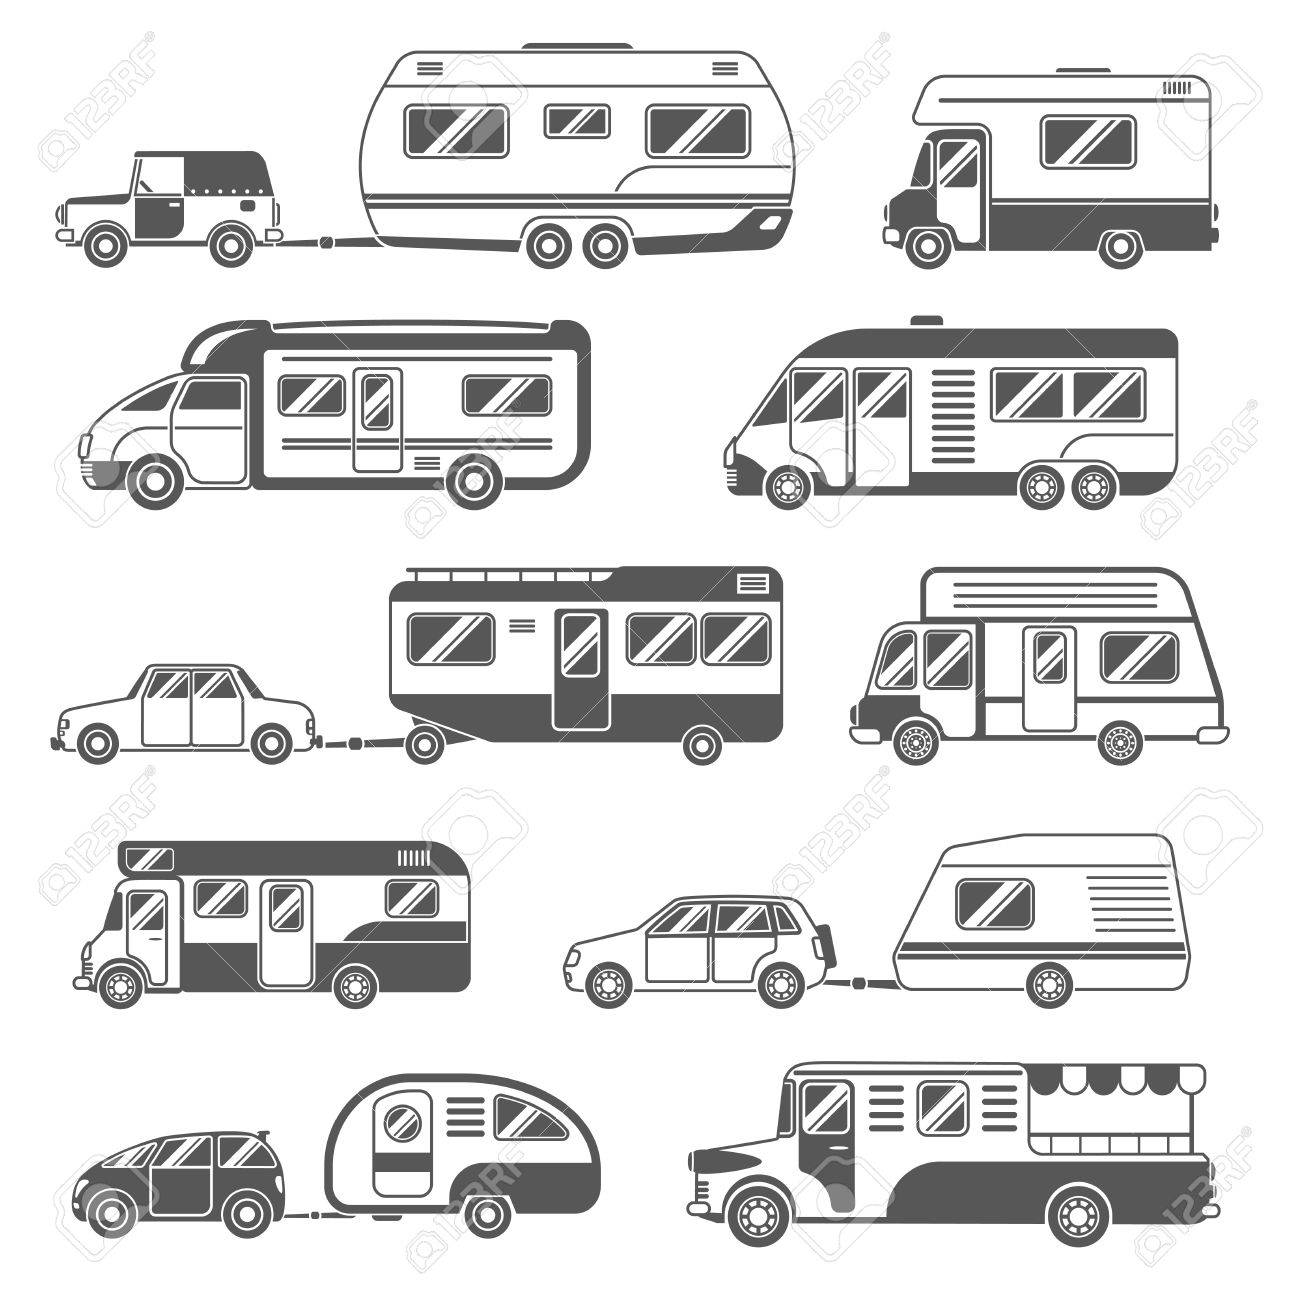 Motorhomes black white icons set with trailers and cars flat isolated vector illustration - 50704018